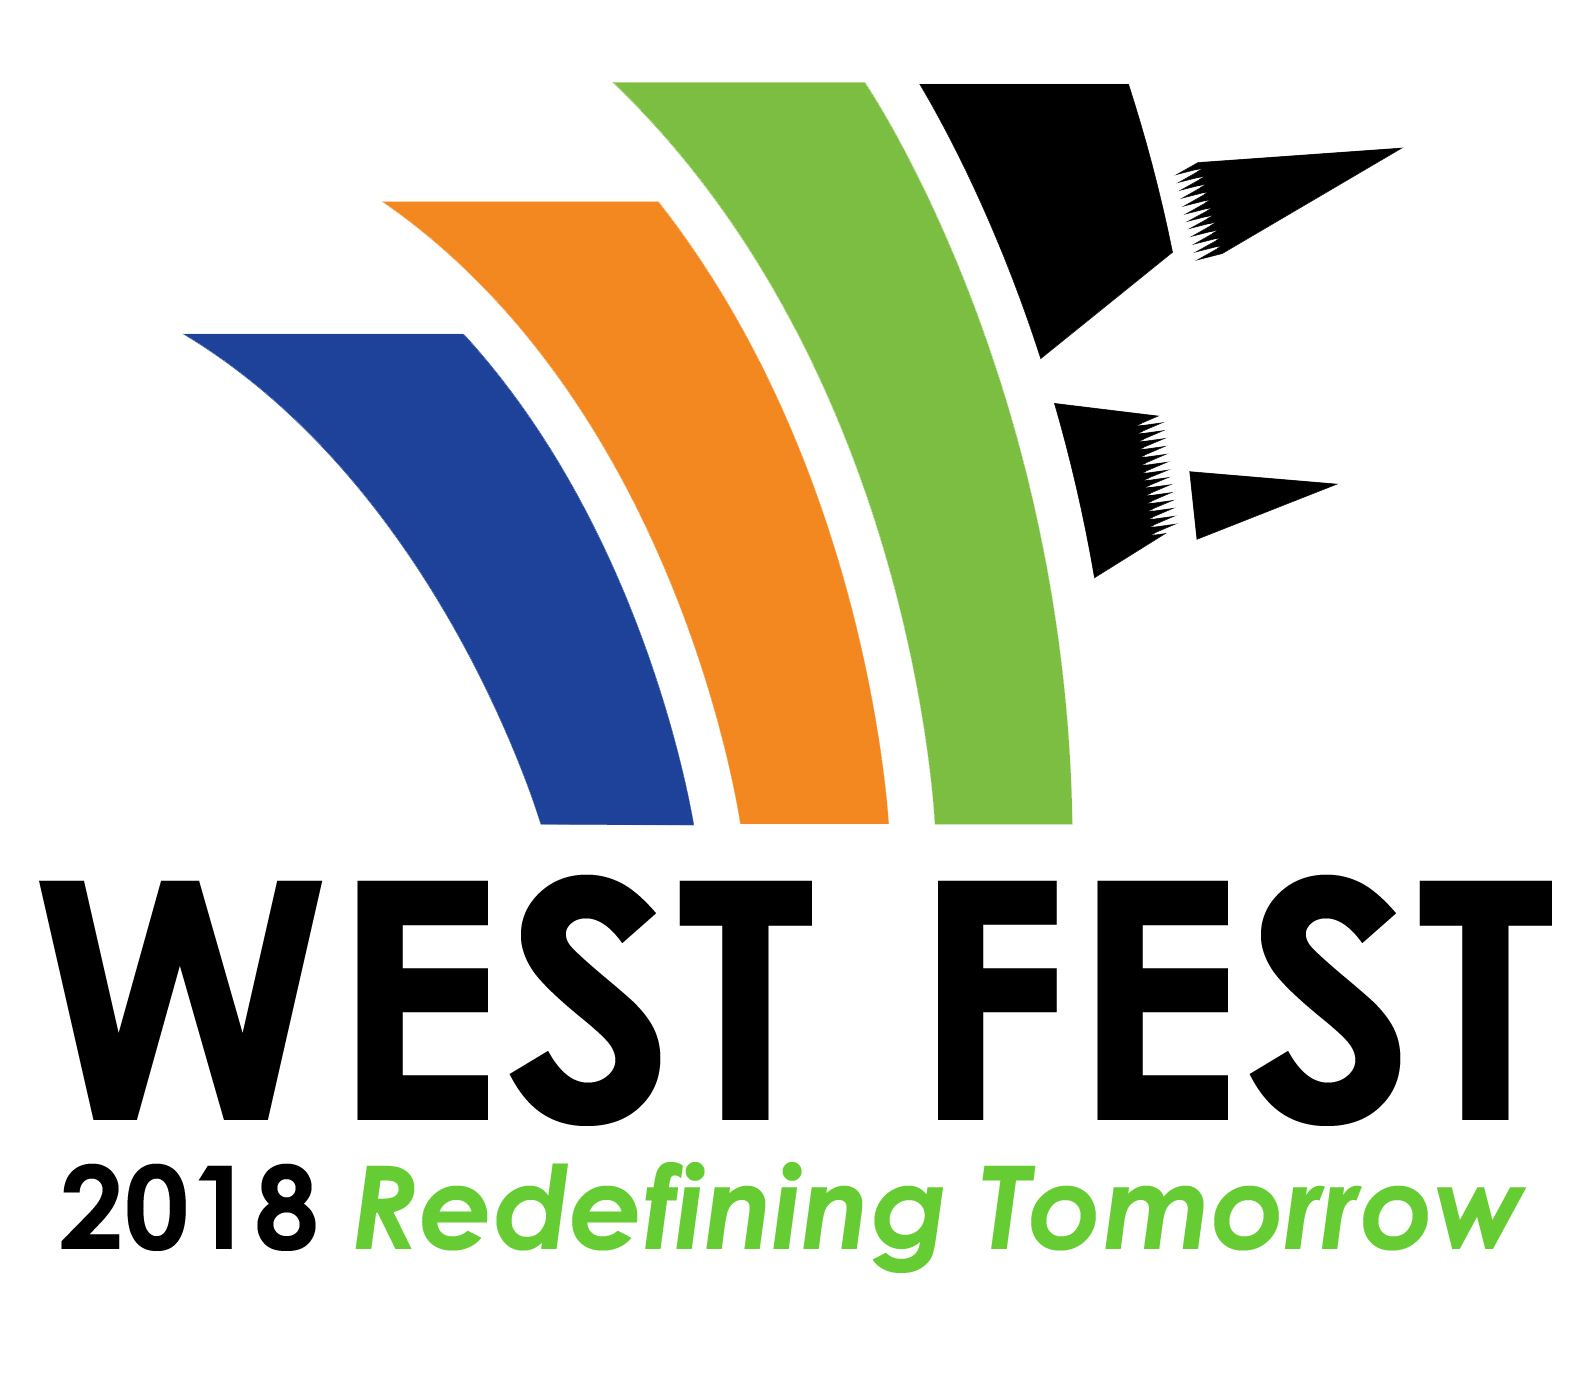 West Fest 2018 Redefining Tomorrow